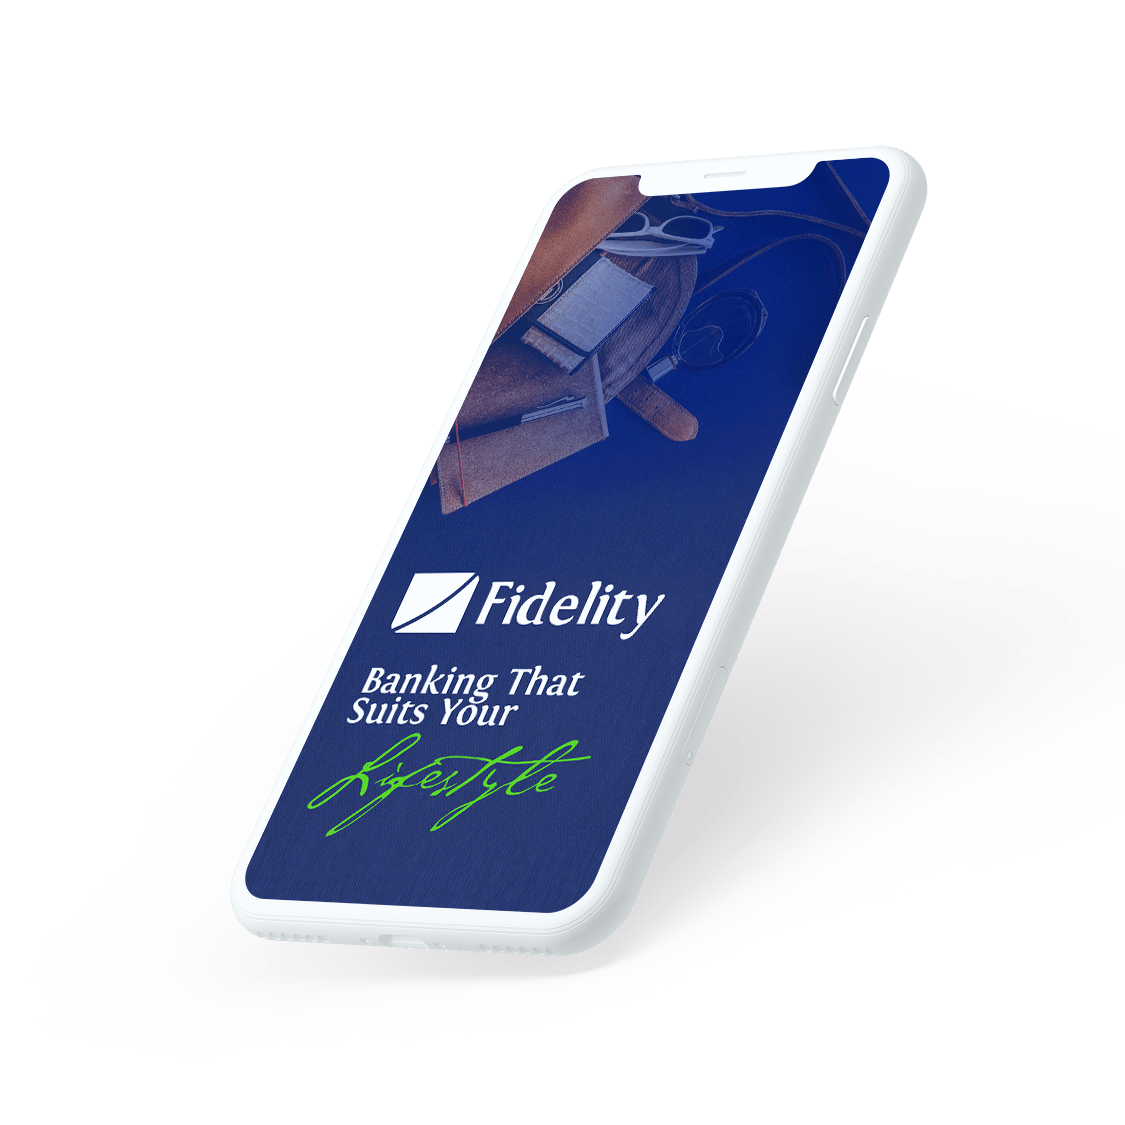 fidelity mobile banking